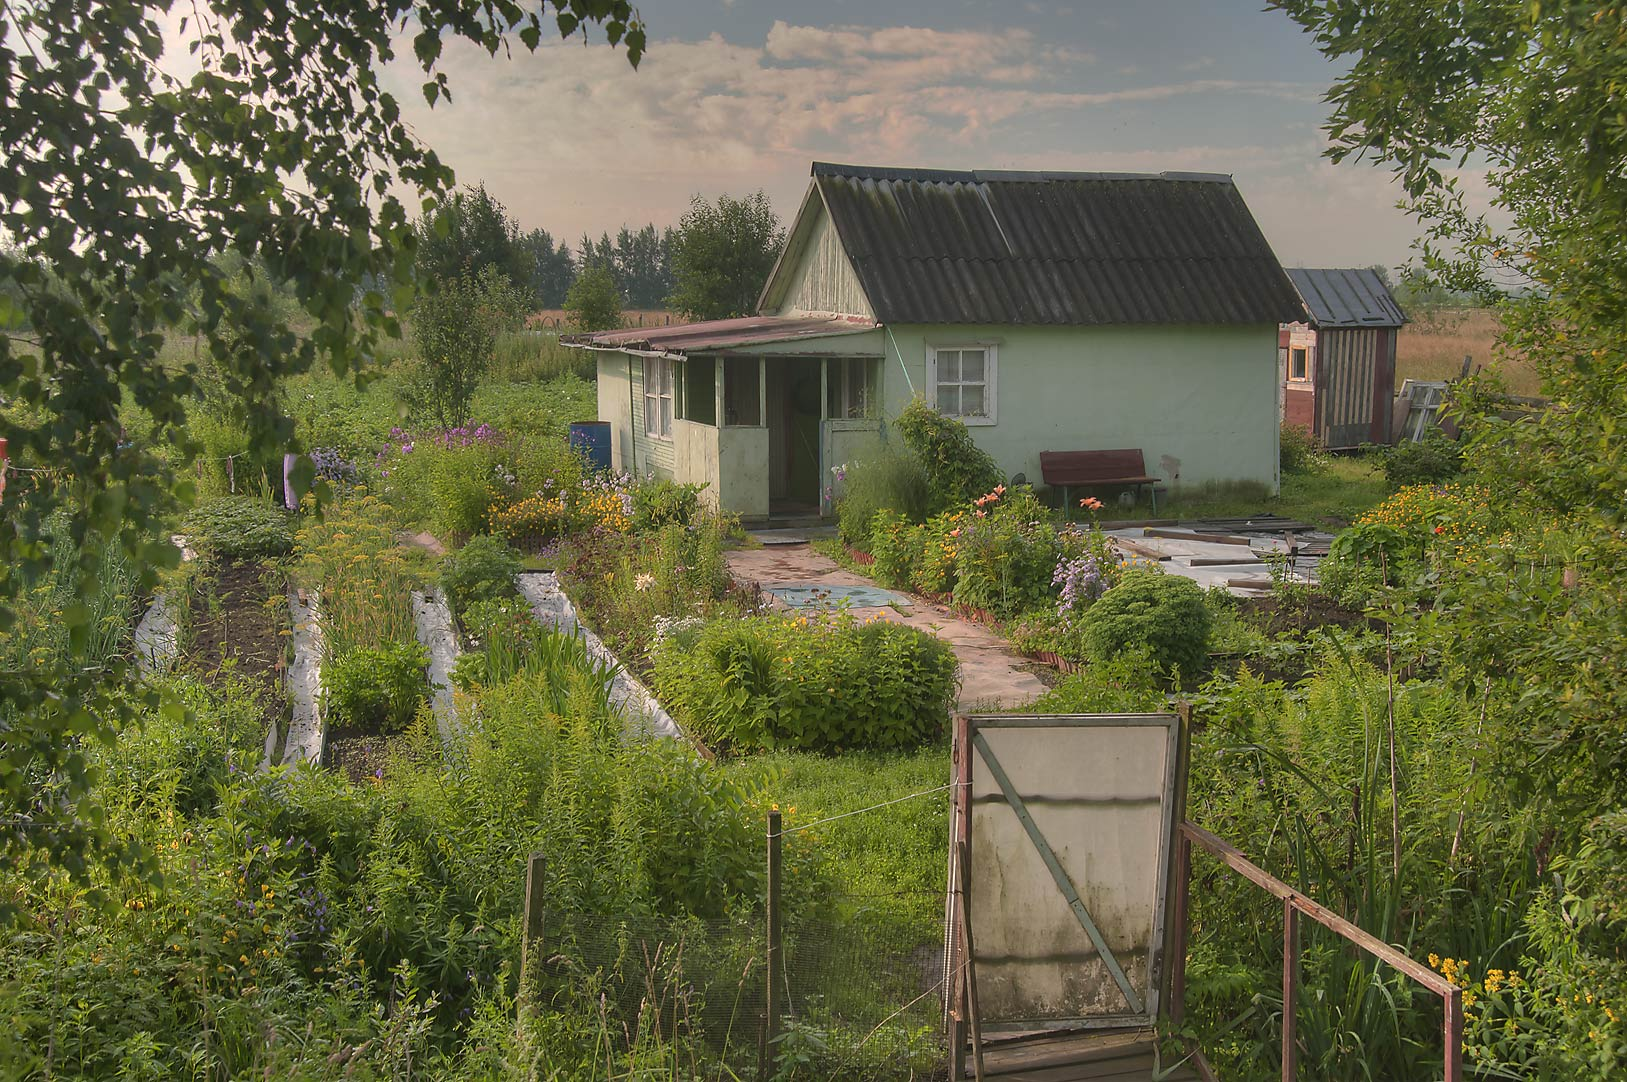 Typical summer house (Dacha) with a kitchen...miles north from St.Petersburg. Russia